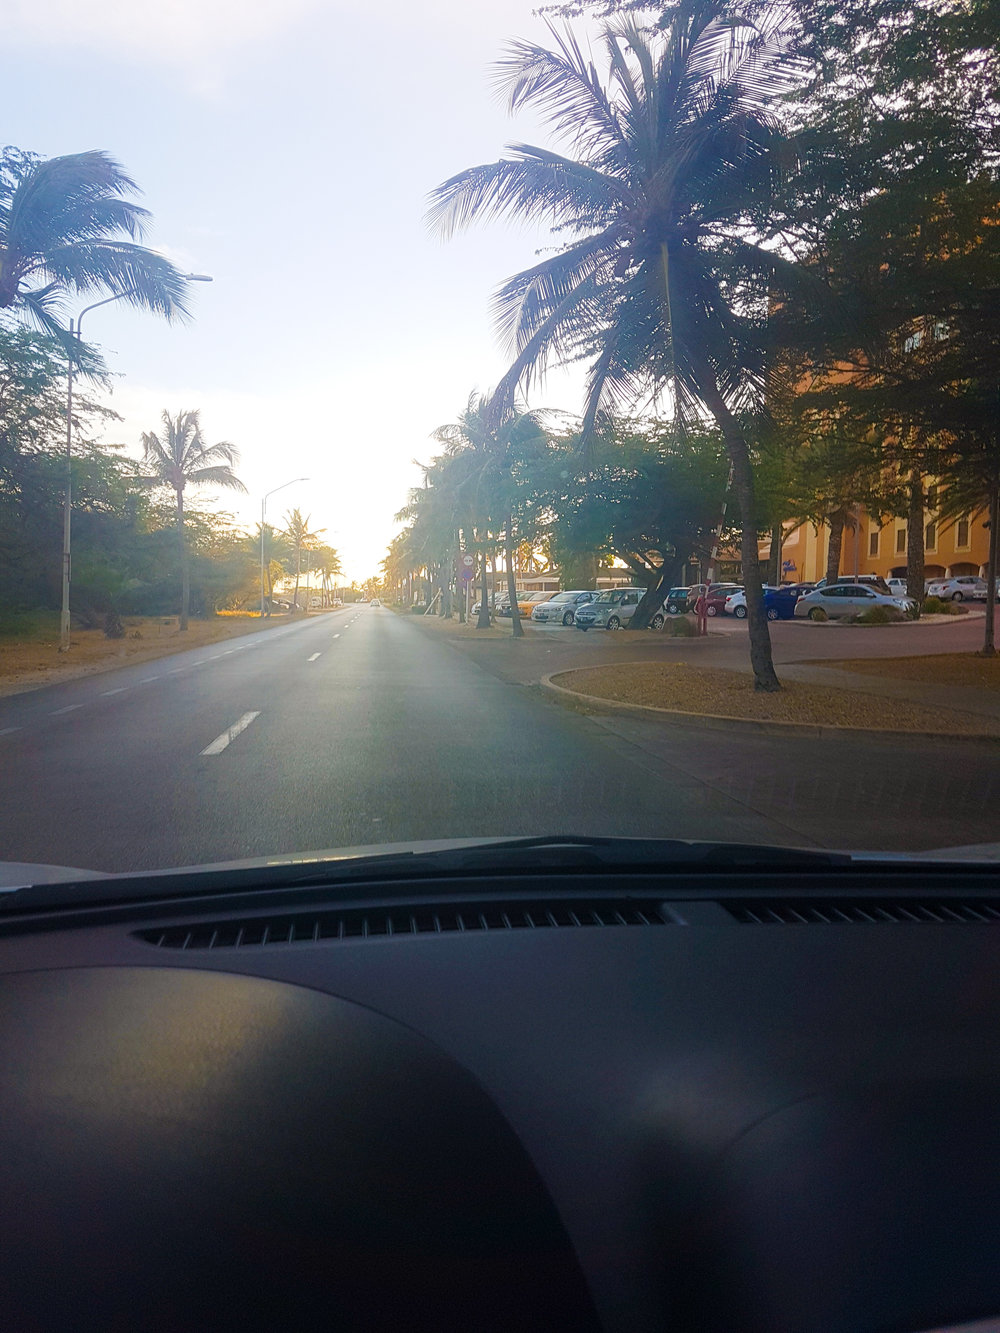 Driving to the beautiful sunsets in Aruba.